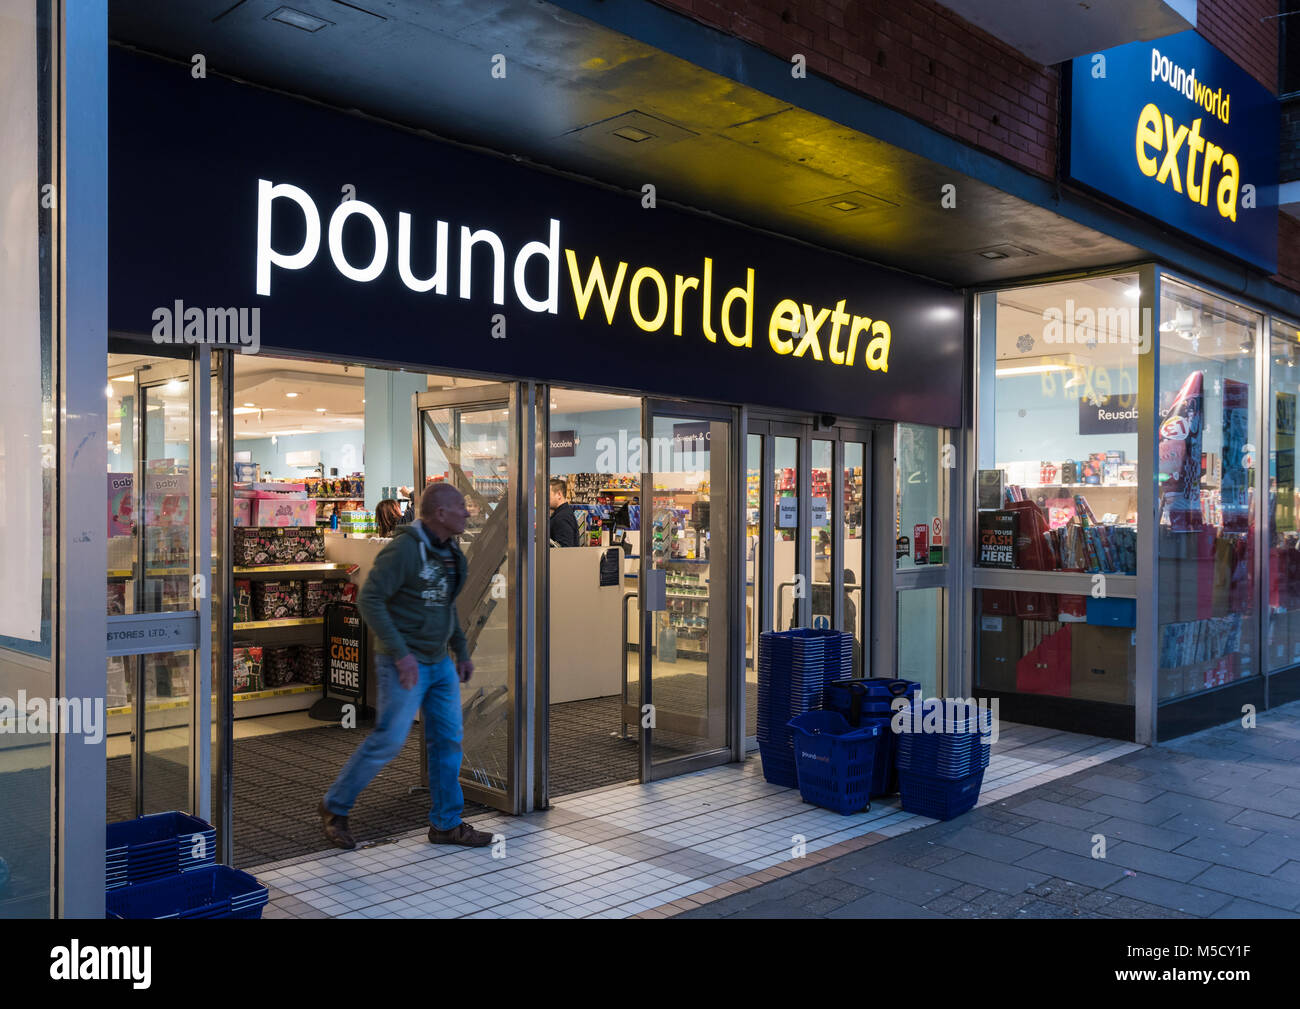 Pound World Extra store in England, UK. Poundworld shop UK. - Stock Image